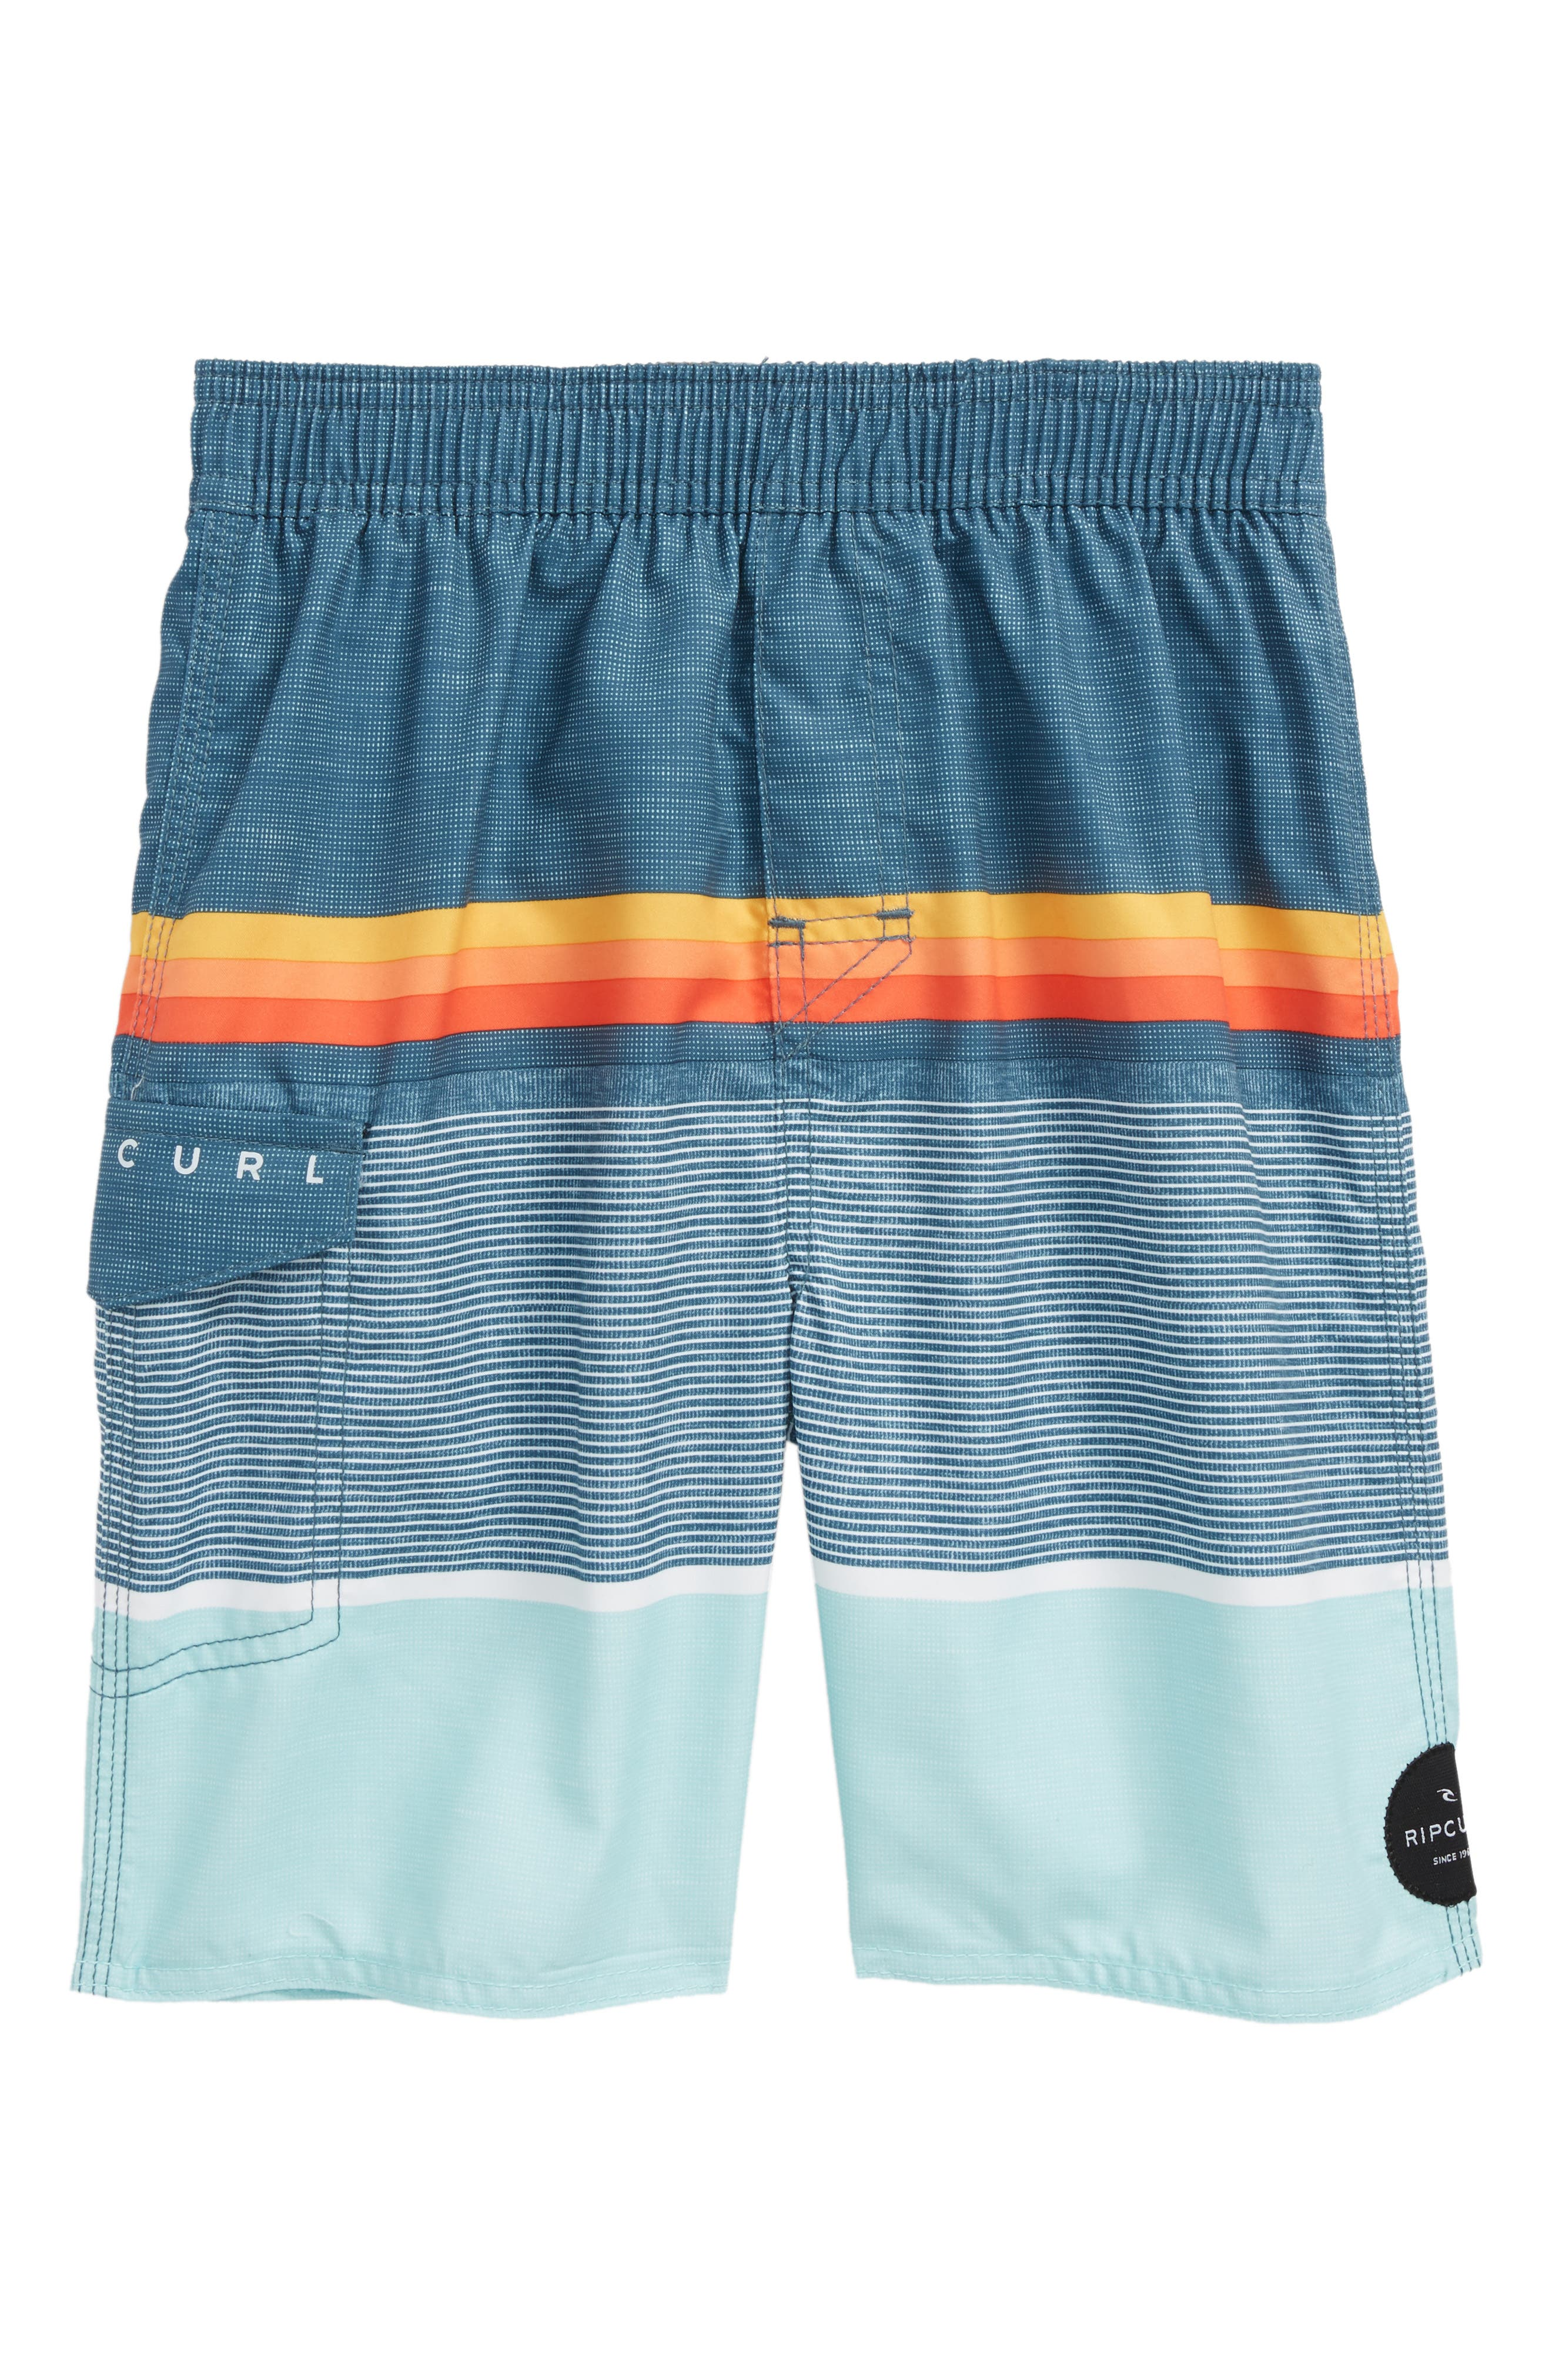 Rapture Layday Volley Shorts,                         Main,                         color, Blue